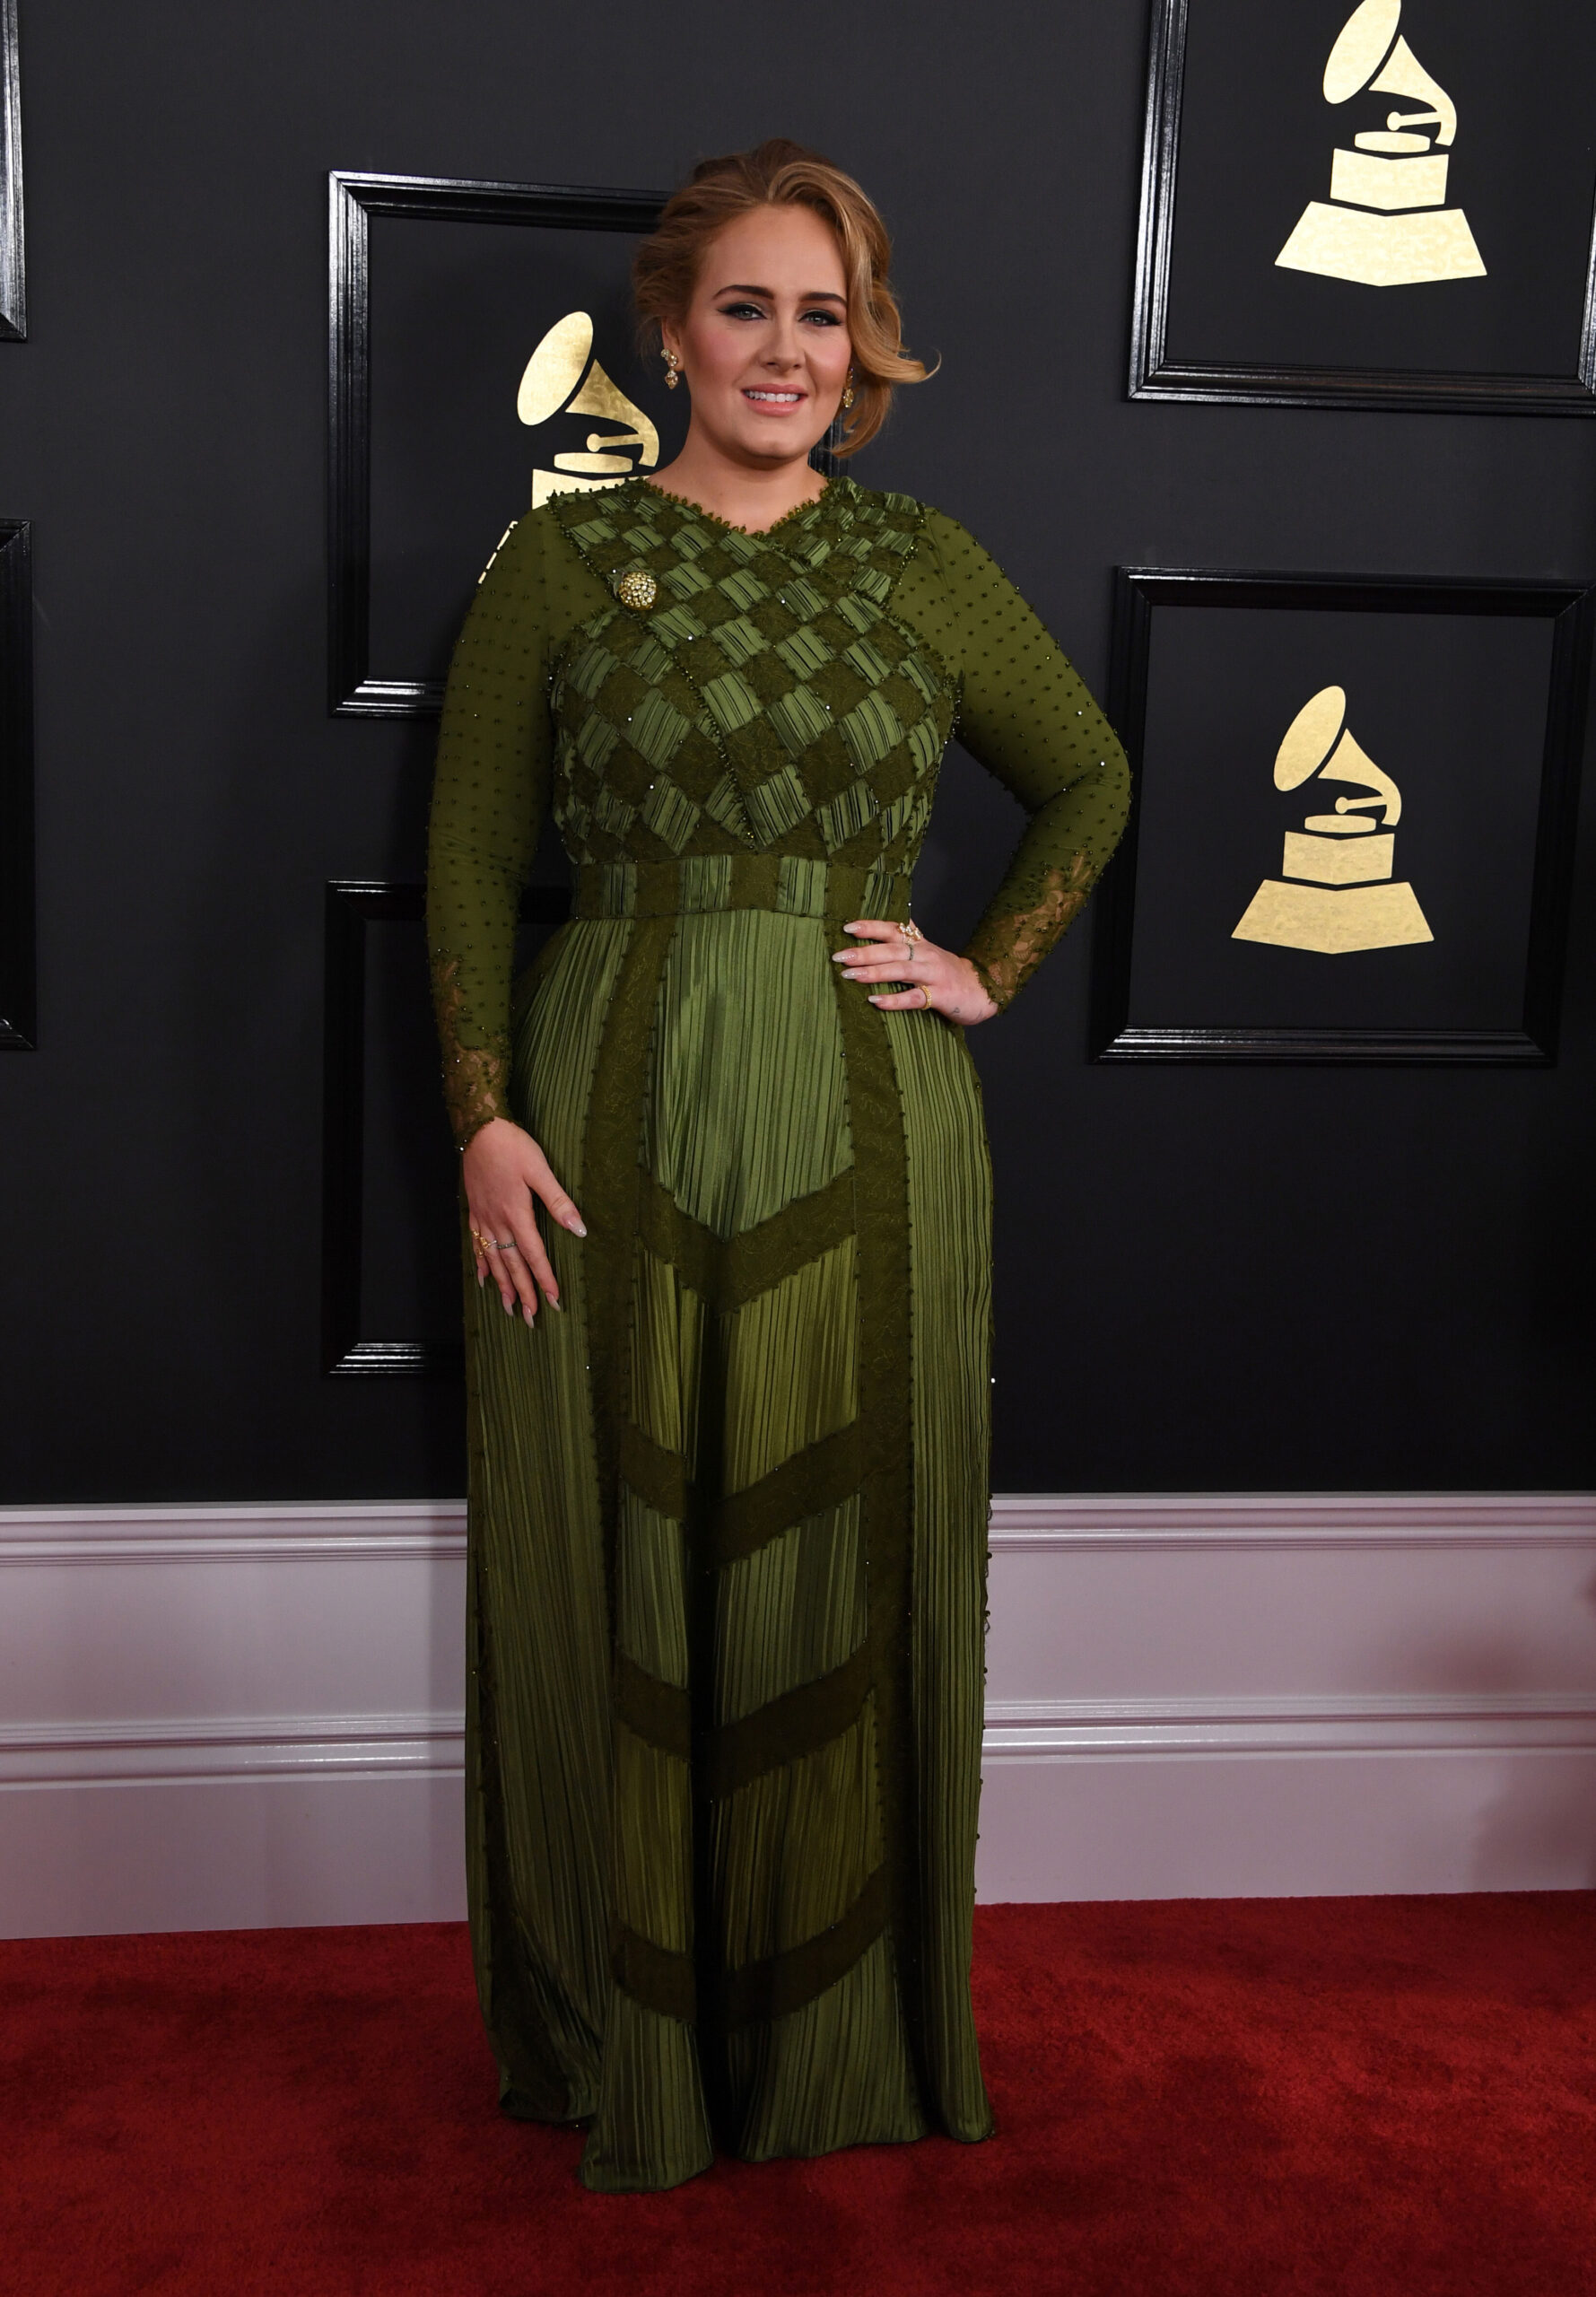 <i>Mark Ralston/AFP/Getty Images</i><br/>Adele has announced a release date for her much anticipated new album. Adele is shown here at the 59th Grammy Awards pre-telecast on February 12